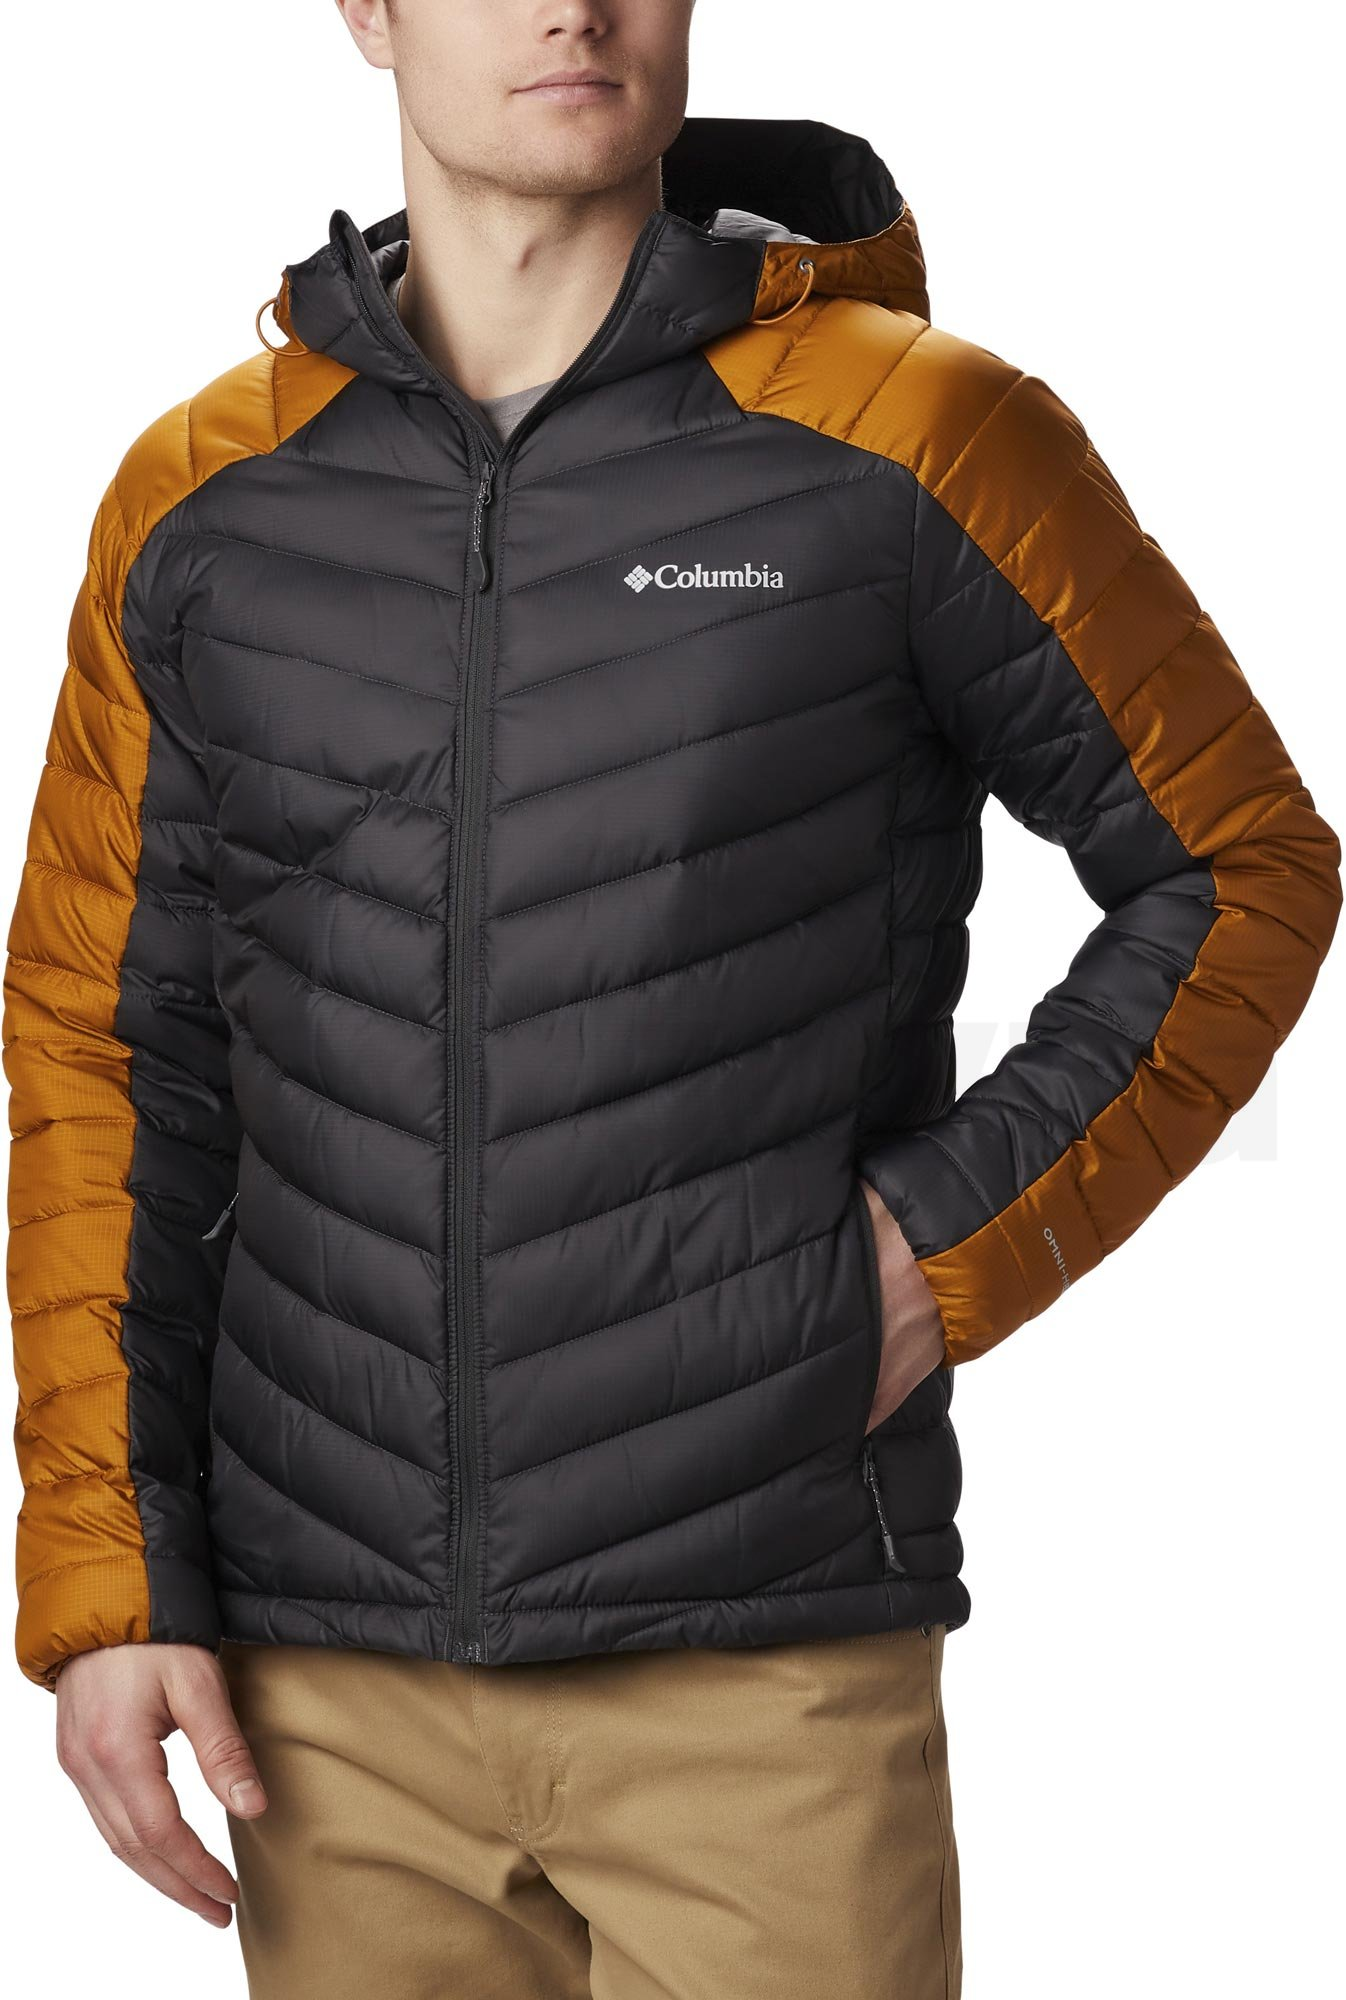 columbia-1803931705-horizon-explorer-hooded-jacket_4